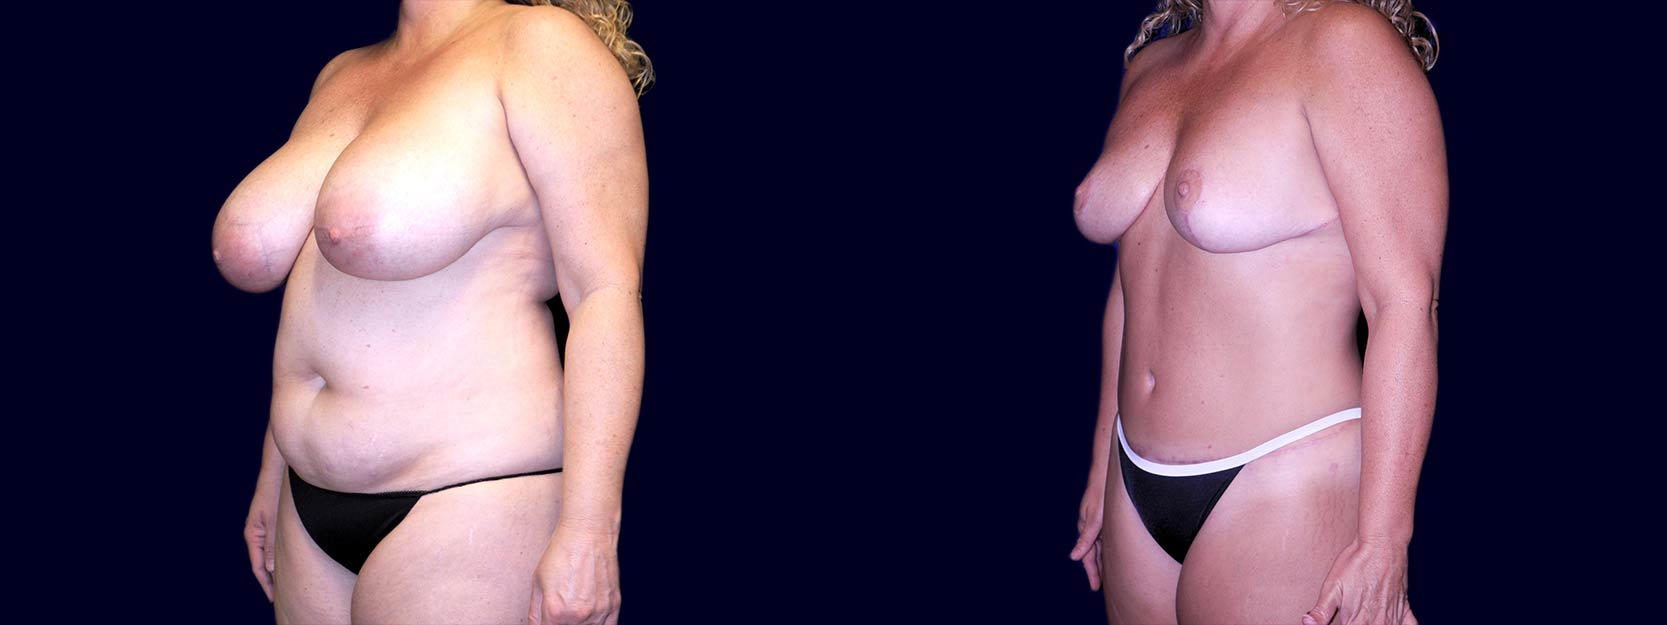 Left 3/4 View - Breast Reduction and Tummy Tuck After Pregnancy